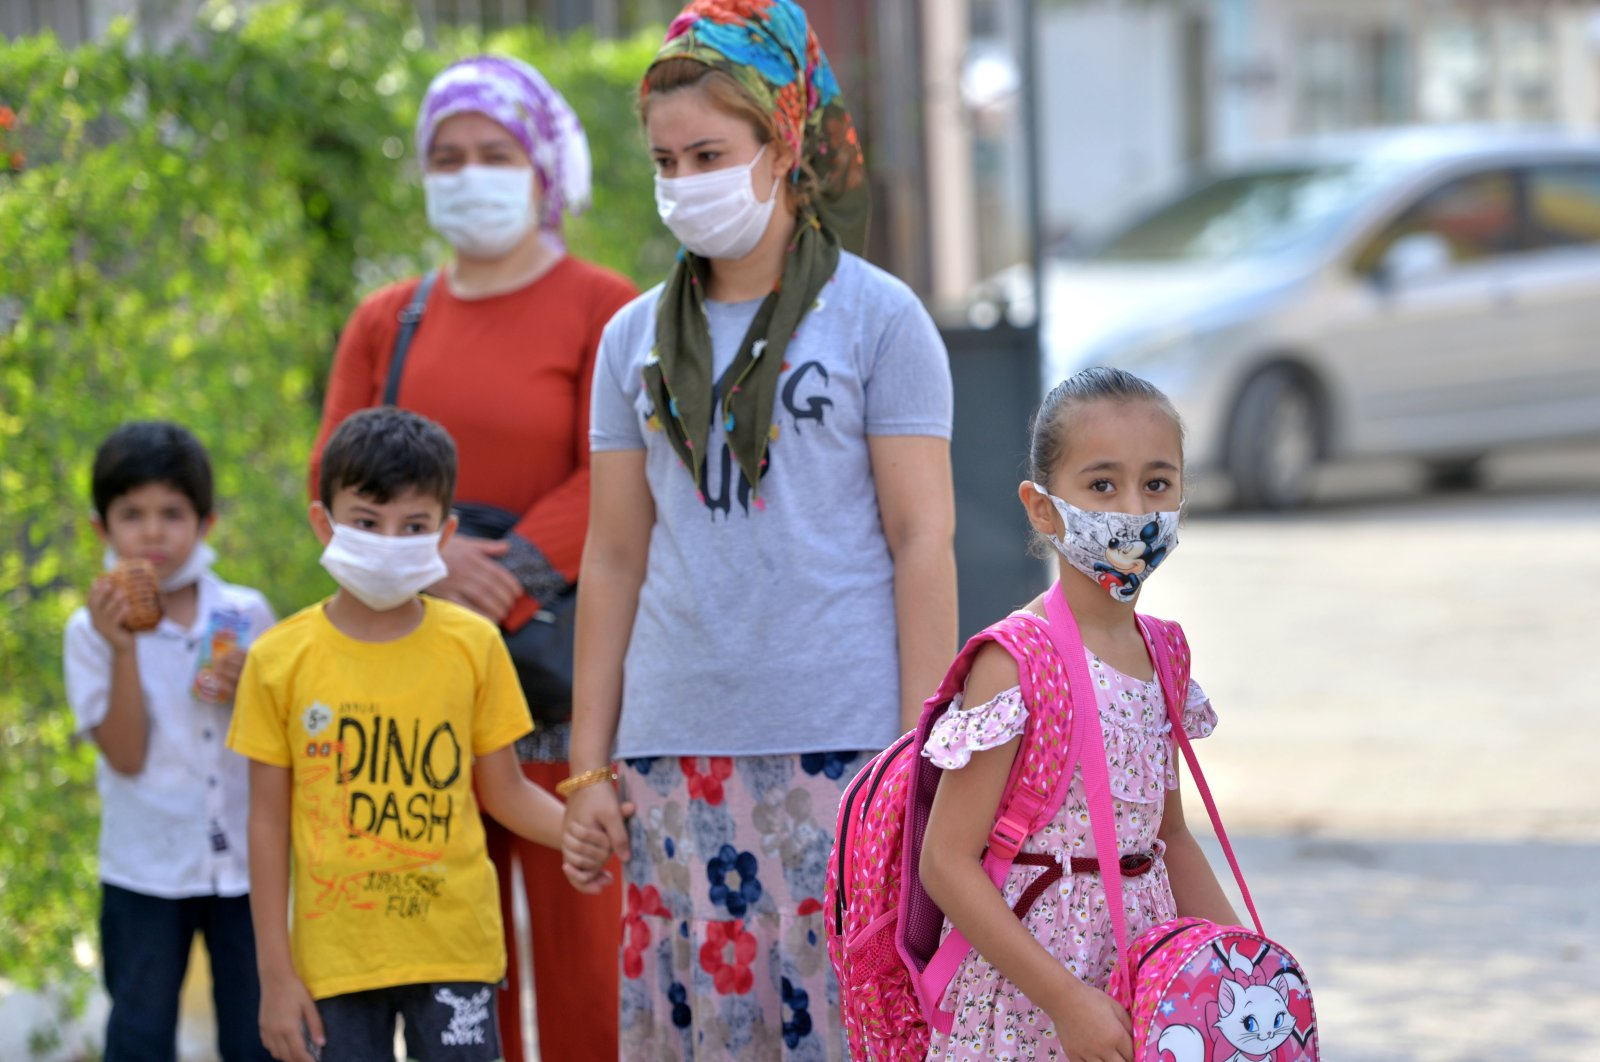 Children wearing protective face masks walk with their mothers on the first day schools opened to kindergarten and first grade students, in Mersin, southern Turkey, Sept. 21, 2020. (AA Photo)